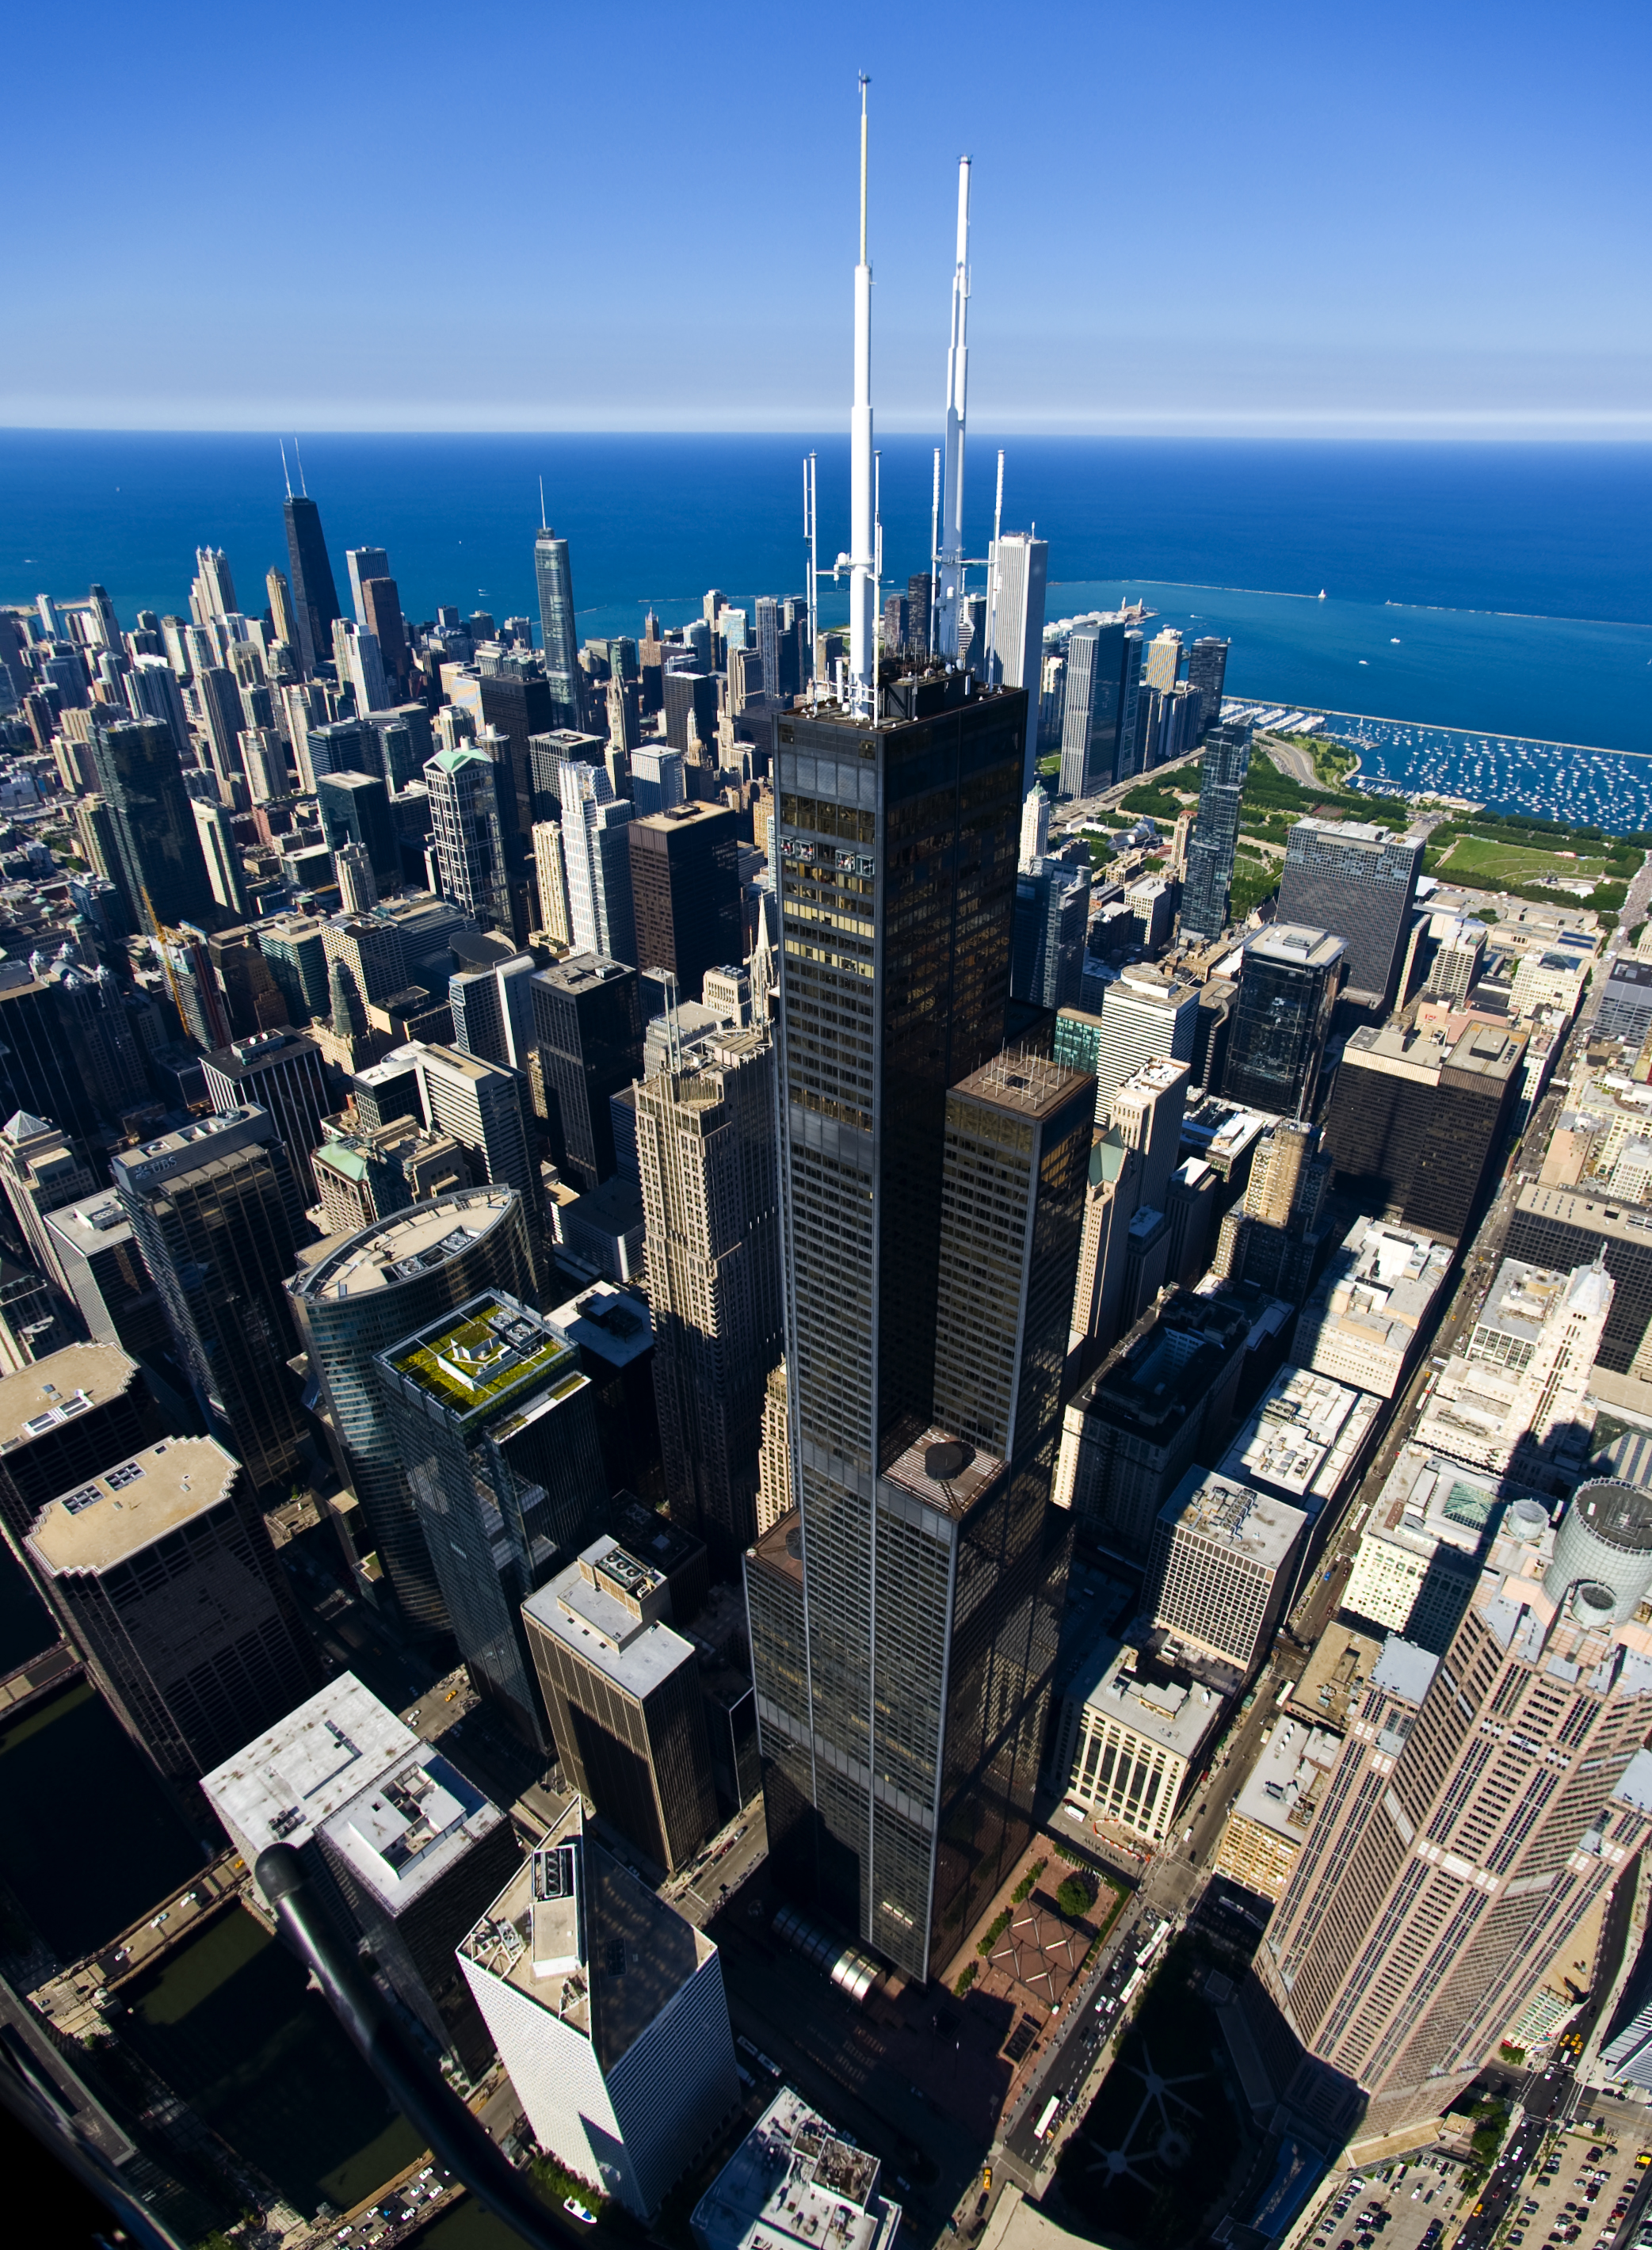 Willis Tower Broadcasts A Number Of Radio And Television